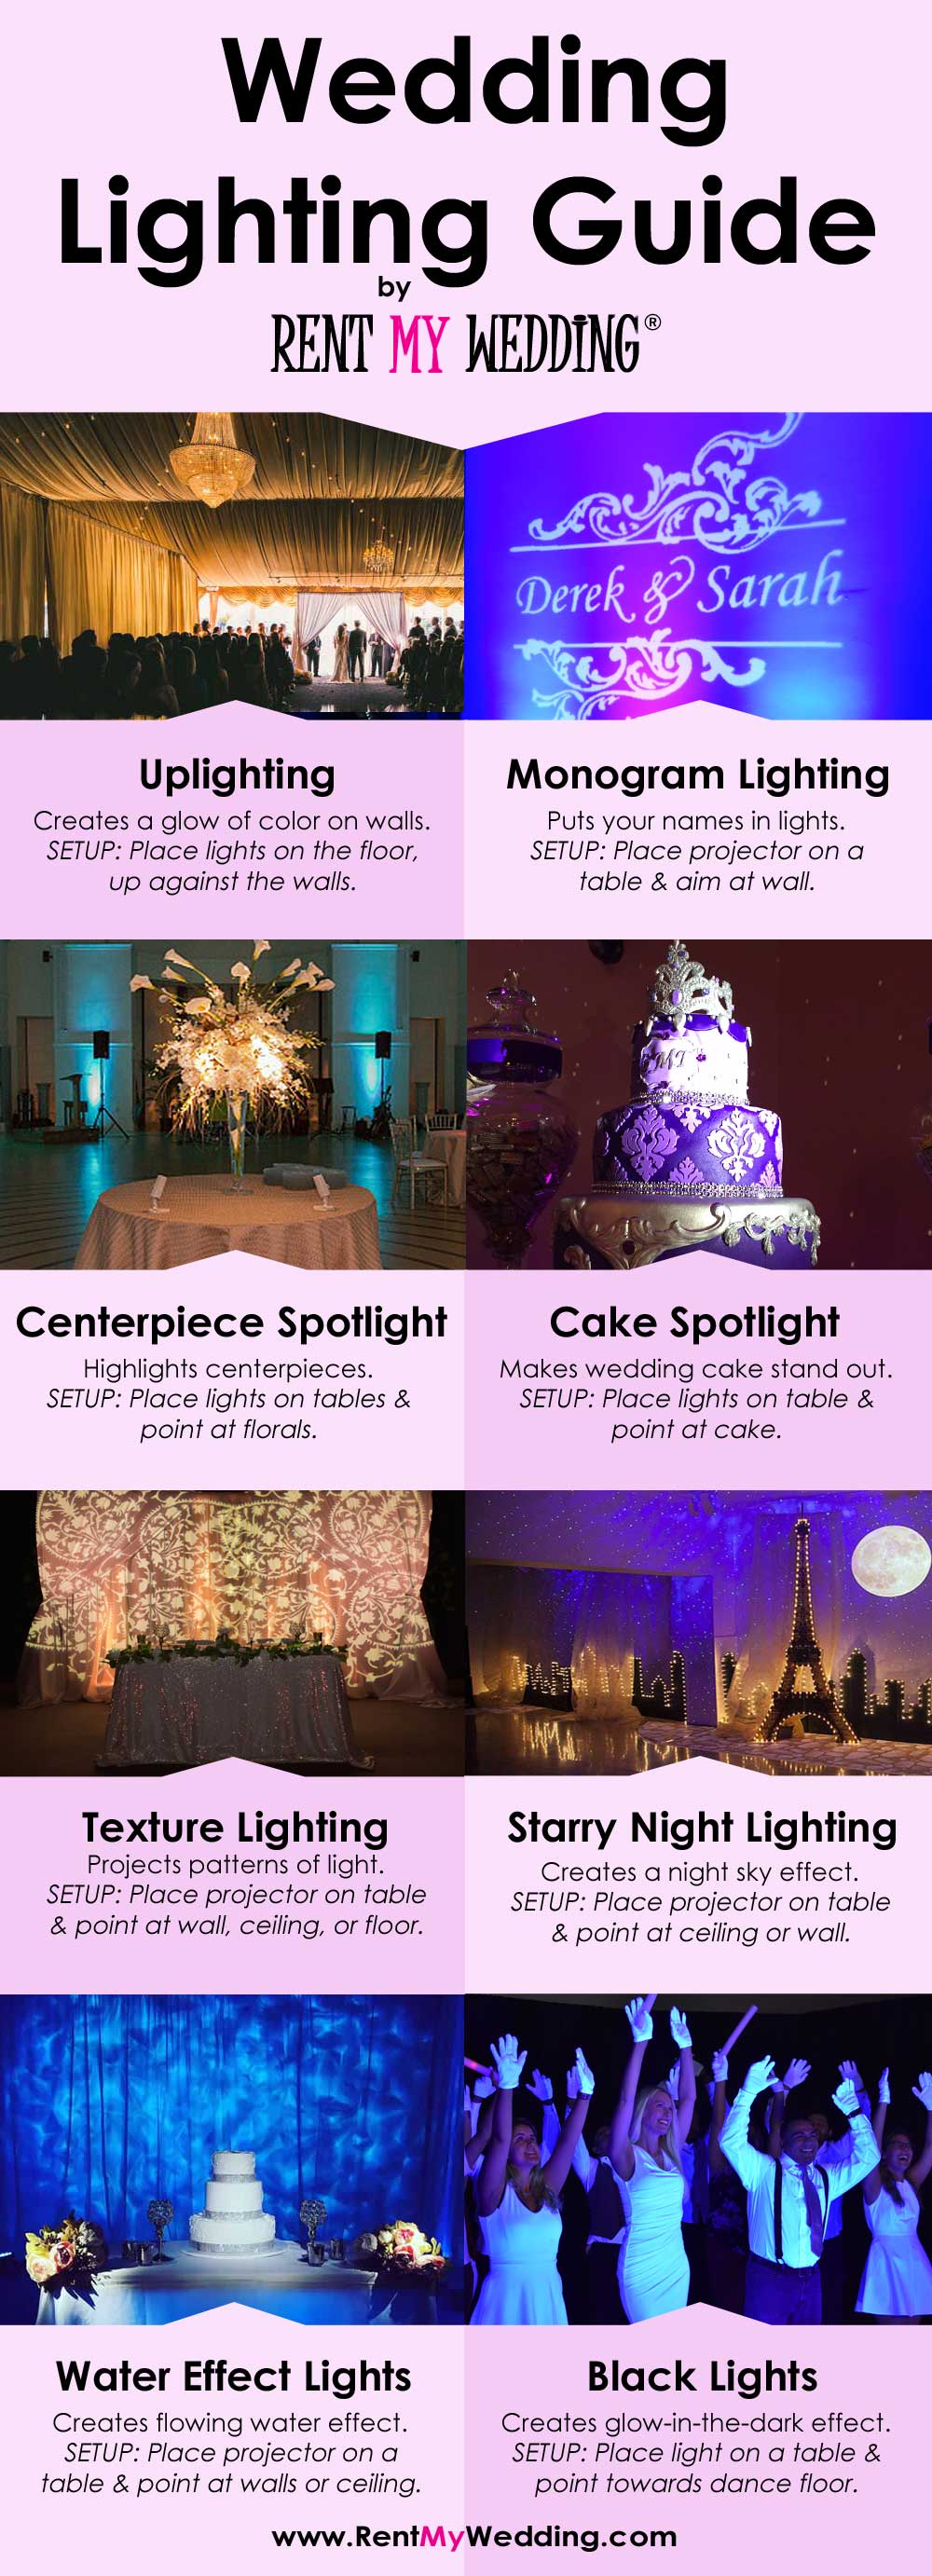 Wedding Lighting 101!